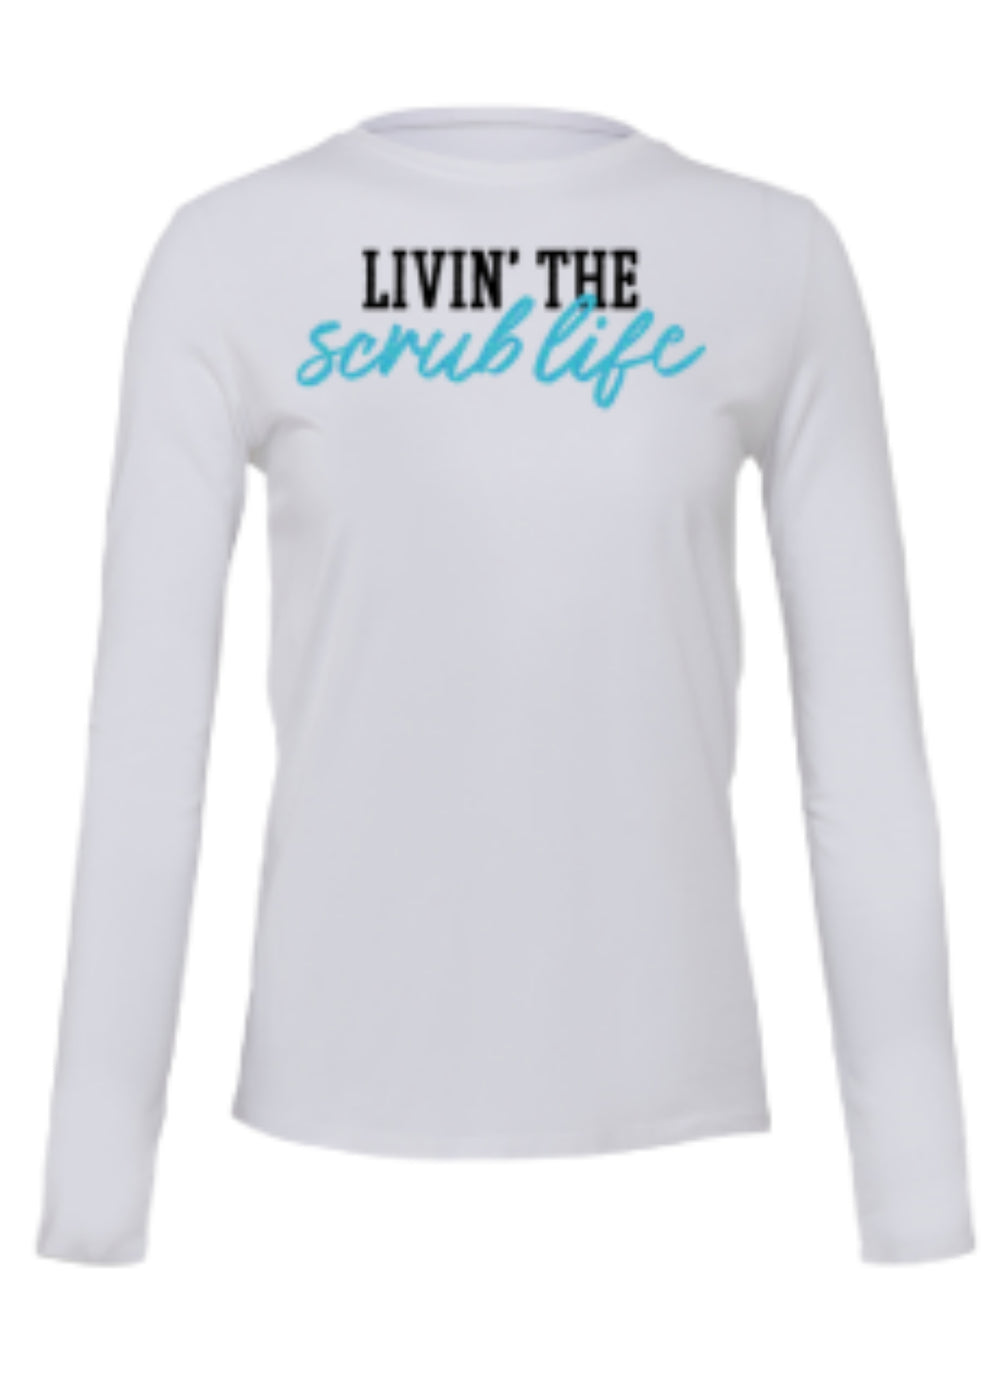 Ultra Soft Long Sleeve Tee - Livin The Scrub Life